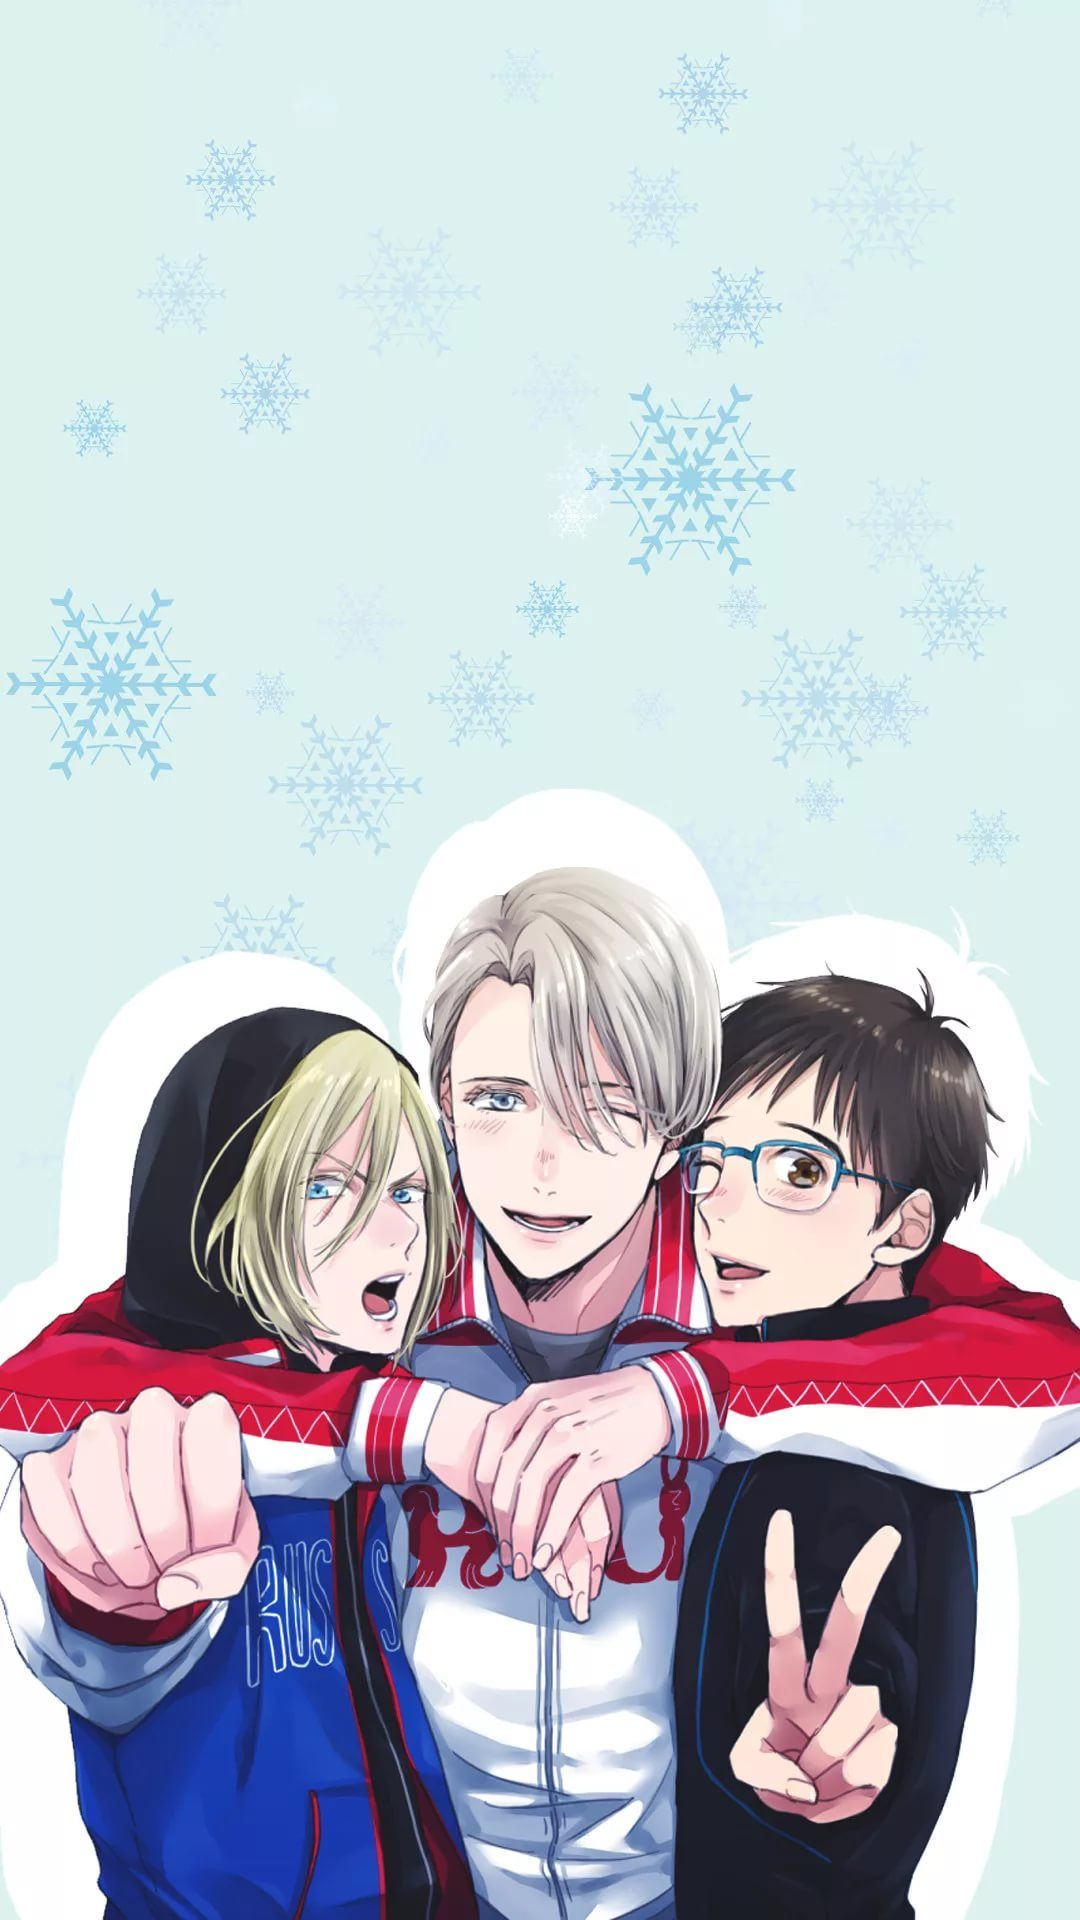 17 Yuri On Ice Iphone Wallpapers Wallpaperboat